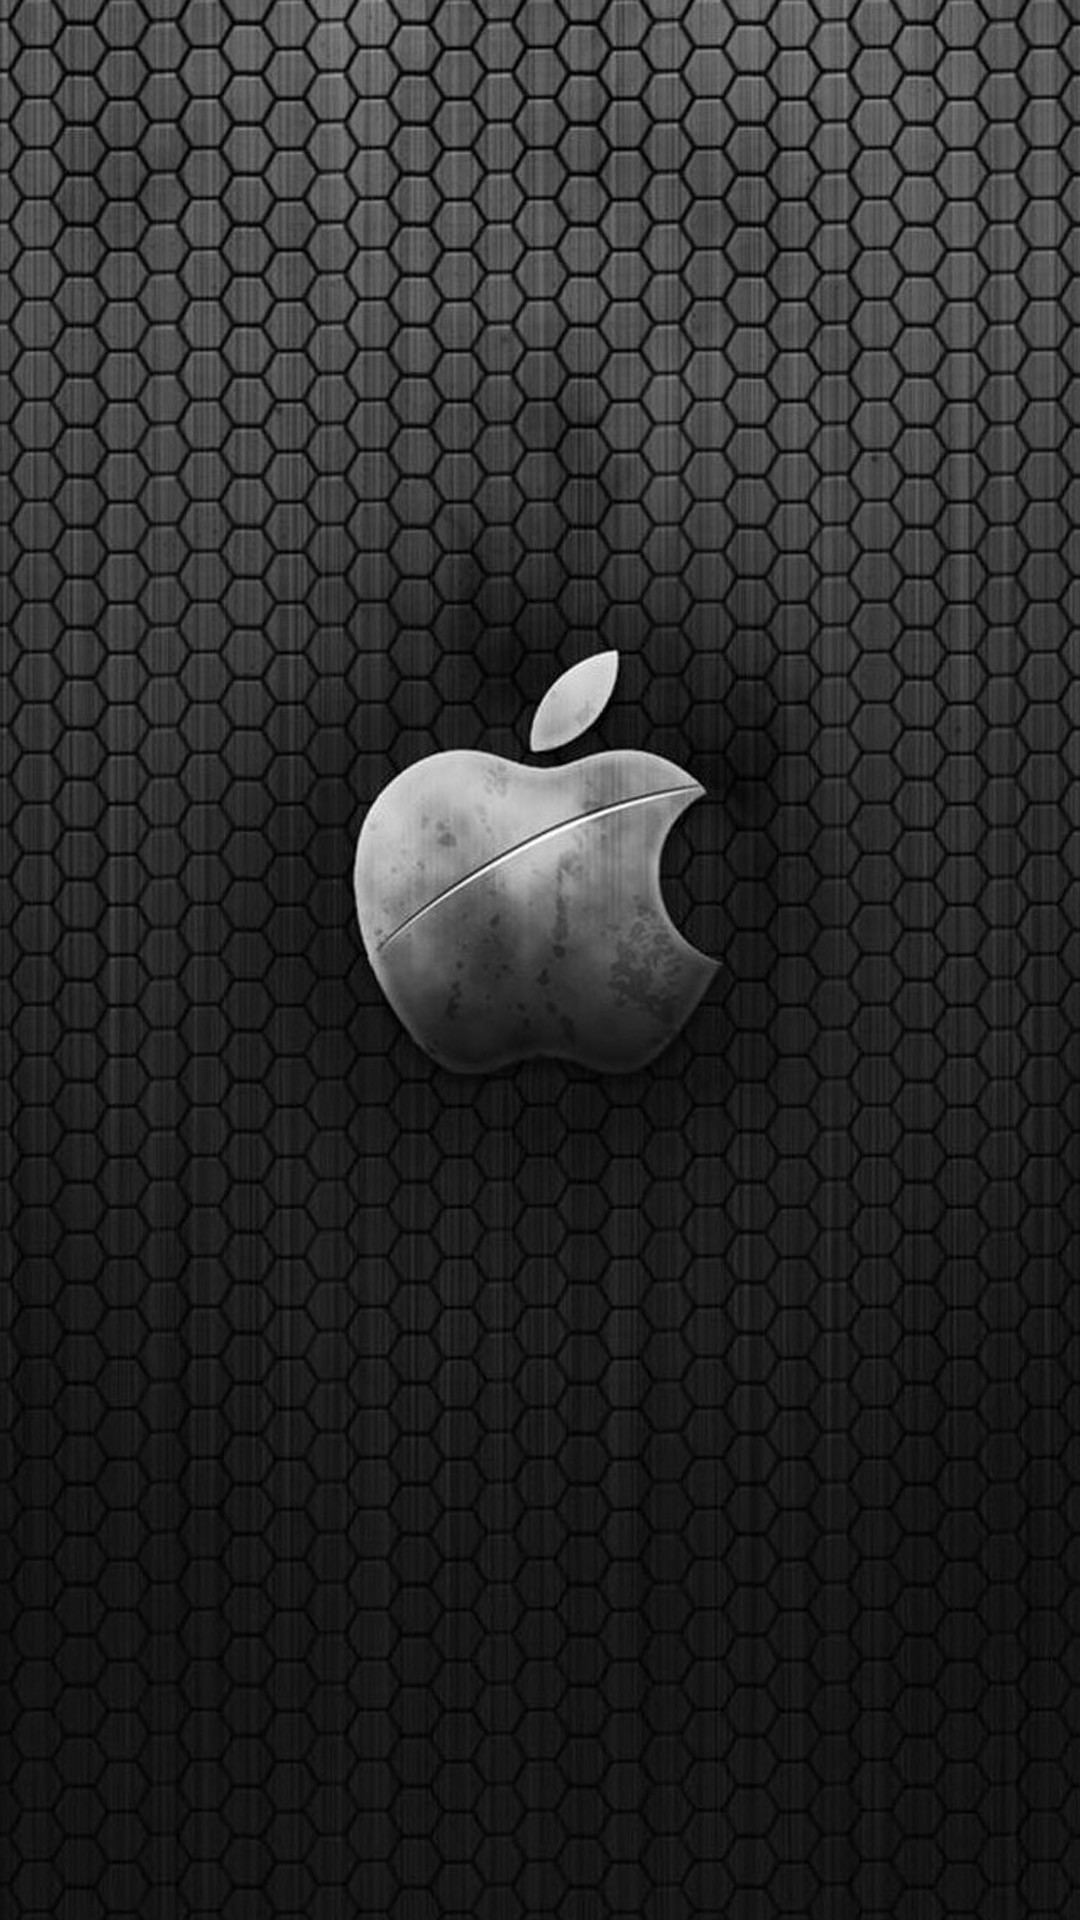 Logo wallpaper for iPhone